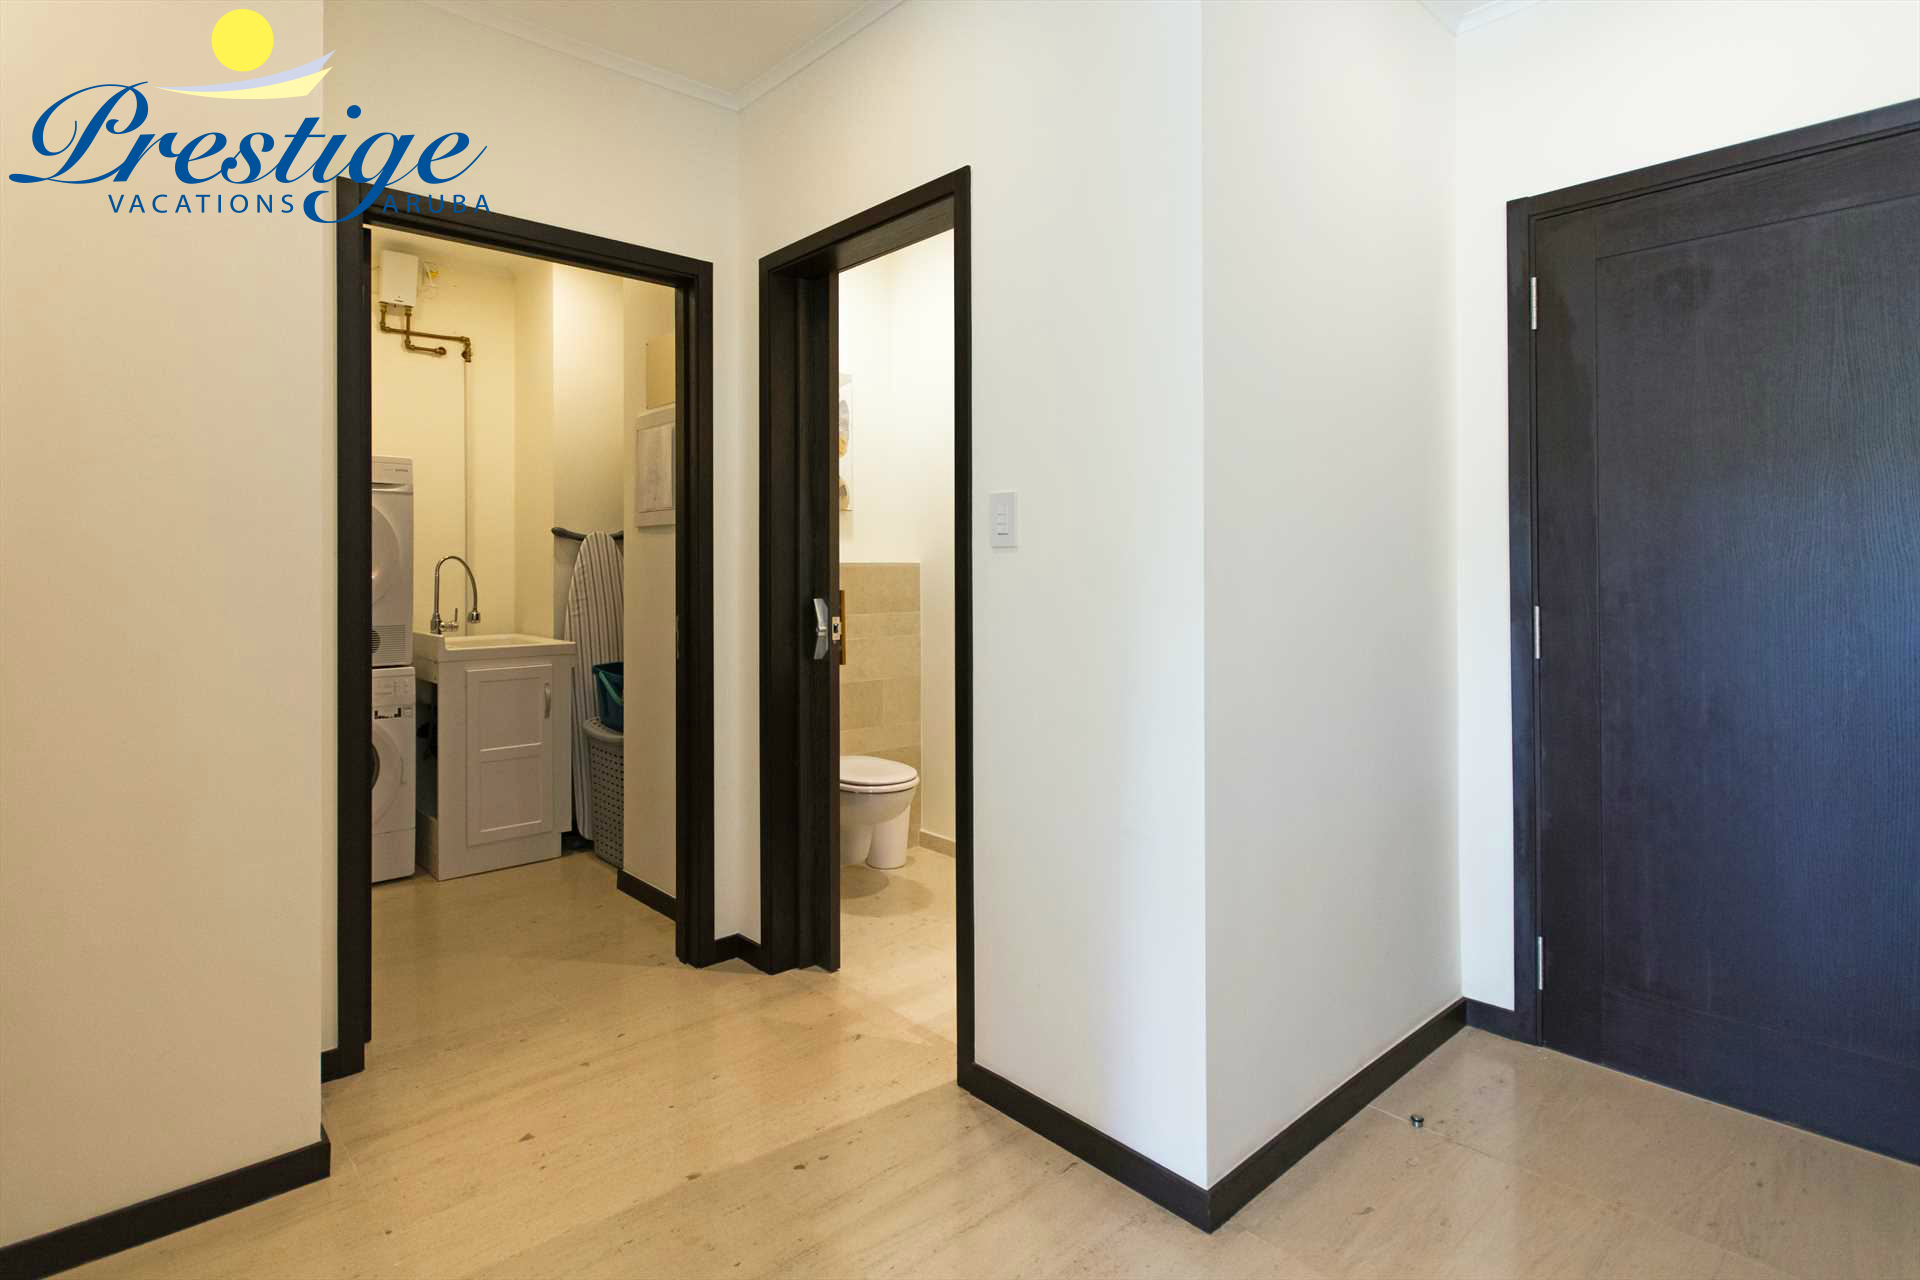 Corridor with a half bathroom and laundry room with washer/dryer